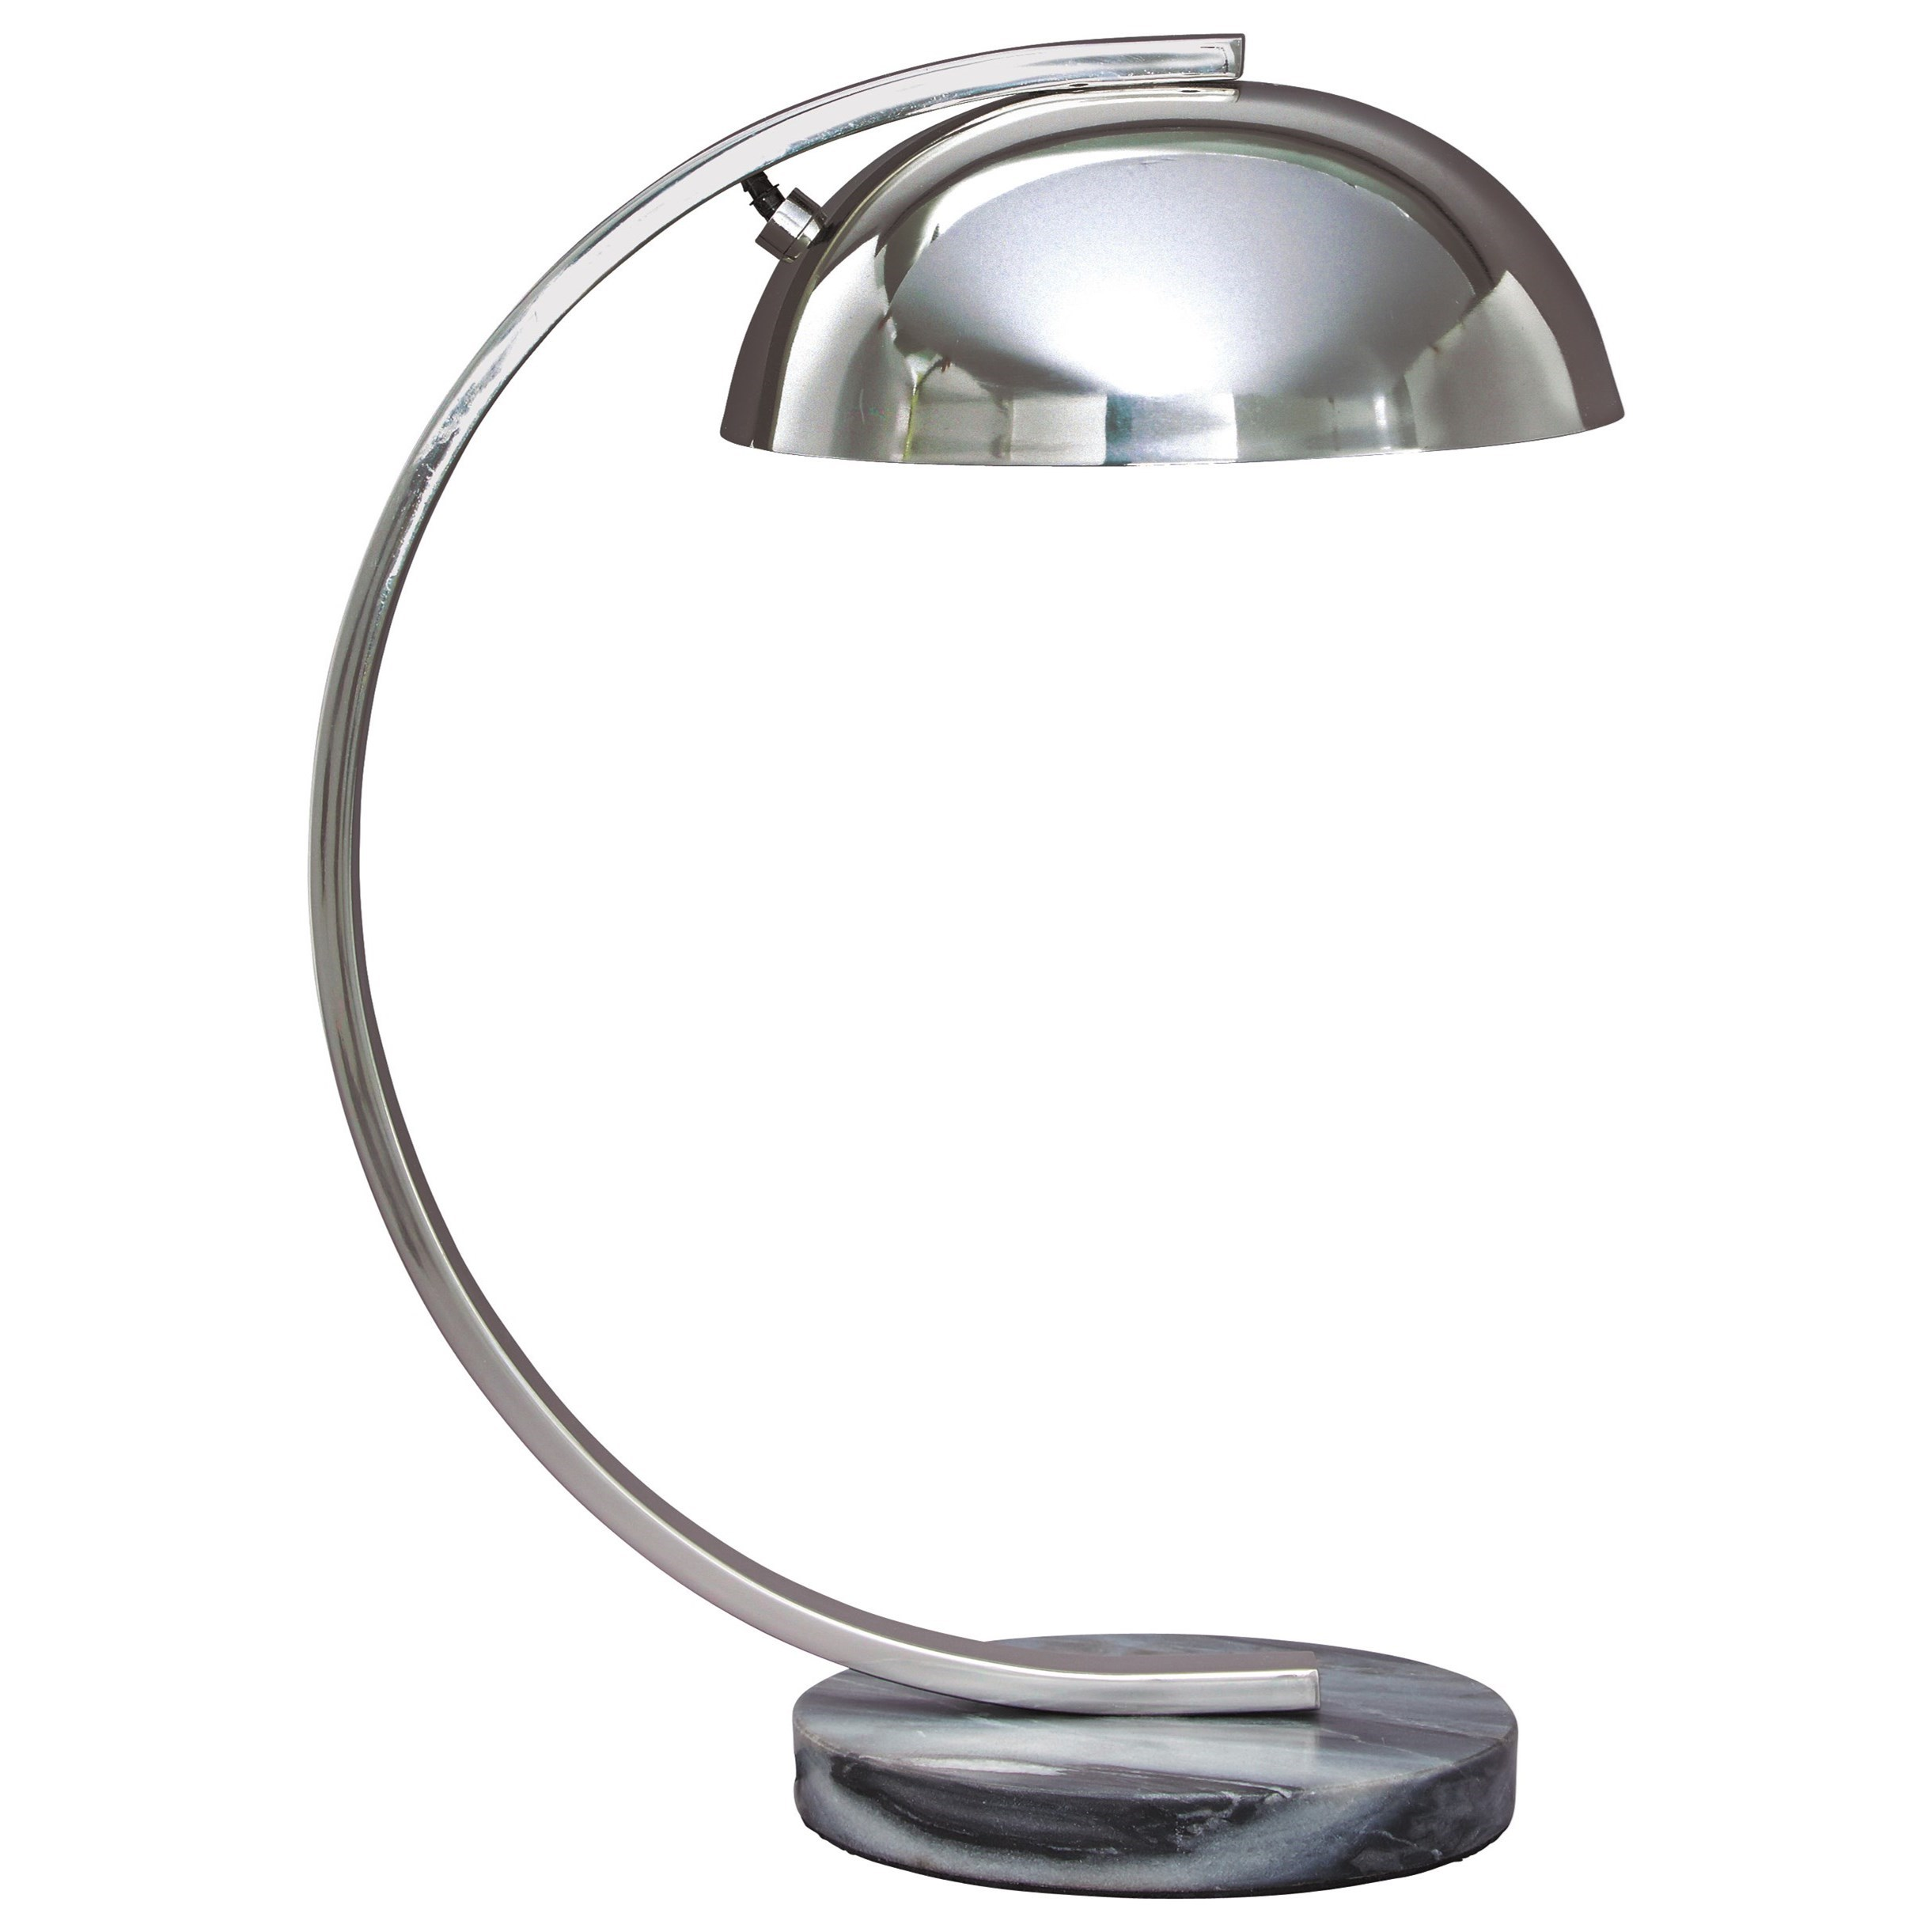 Lamps - Contemporary Haden Chrome Finish Metal Desk Lamp by Signature at Walker's Furniture